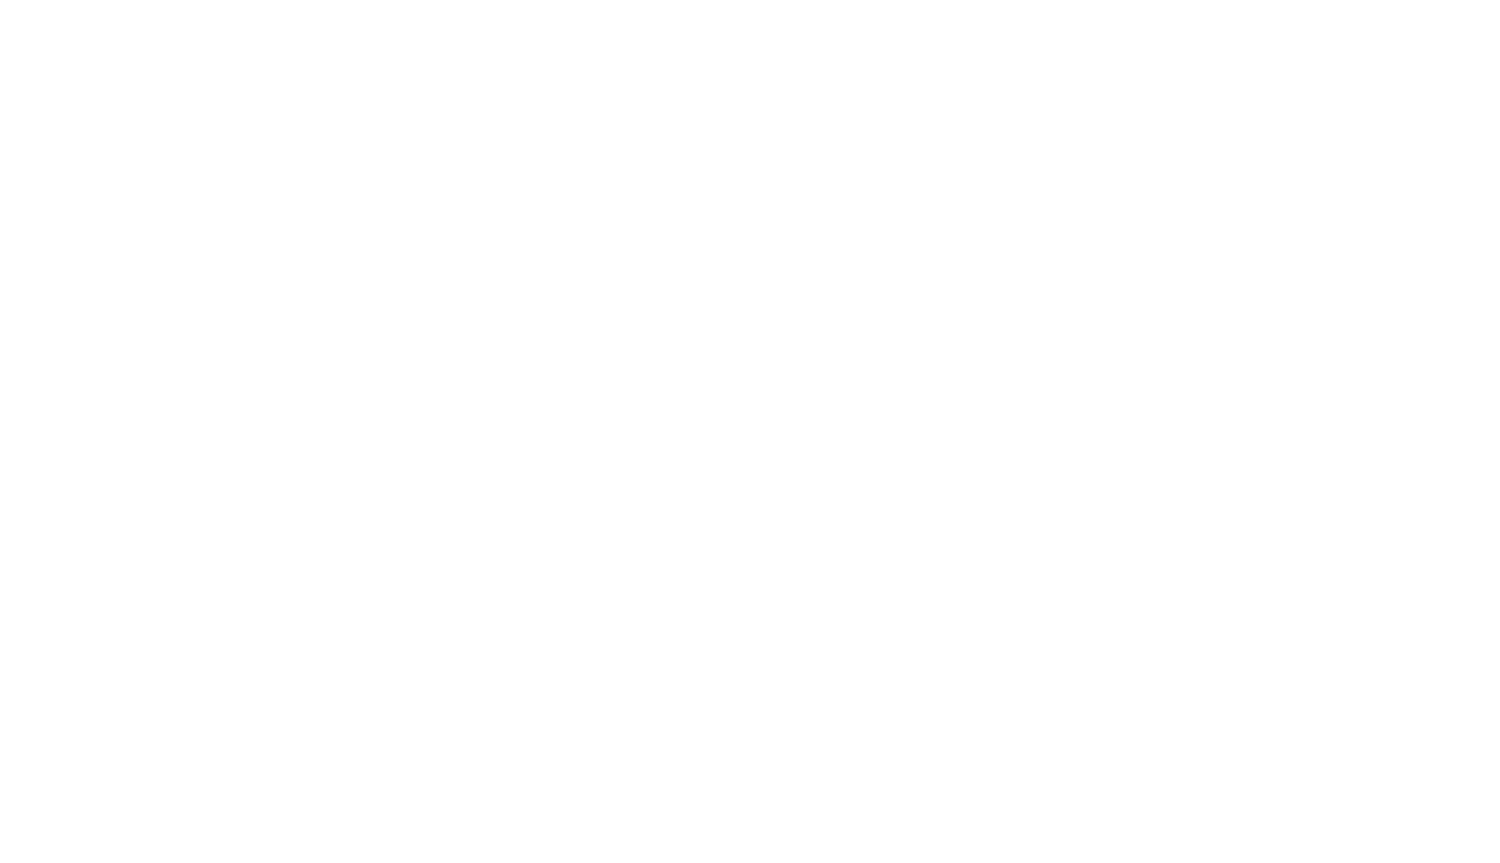 Pine Creek Animal Hospital